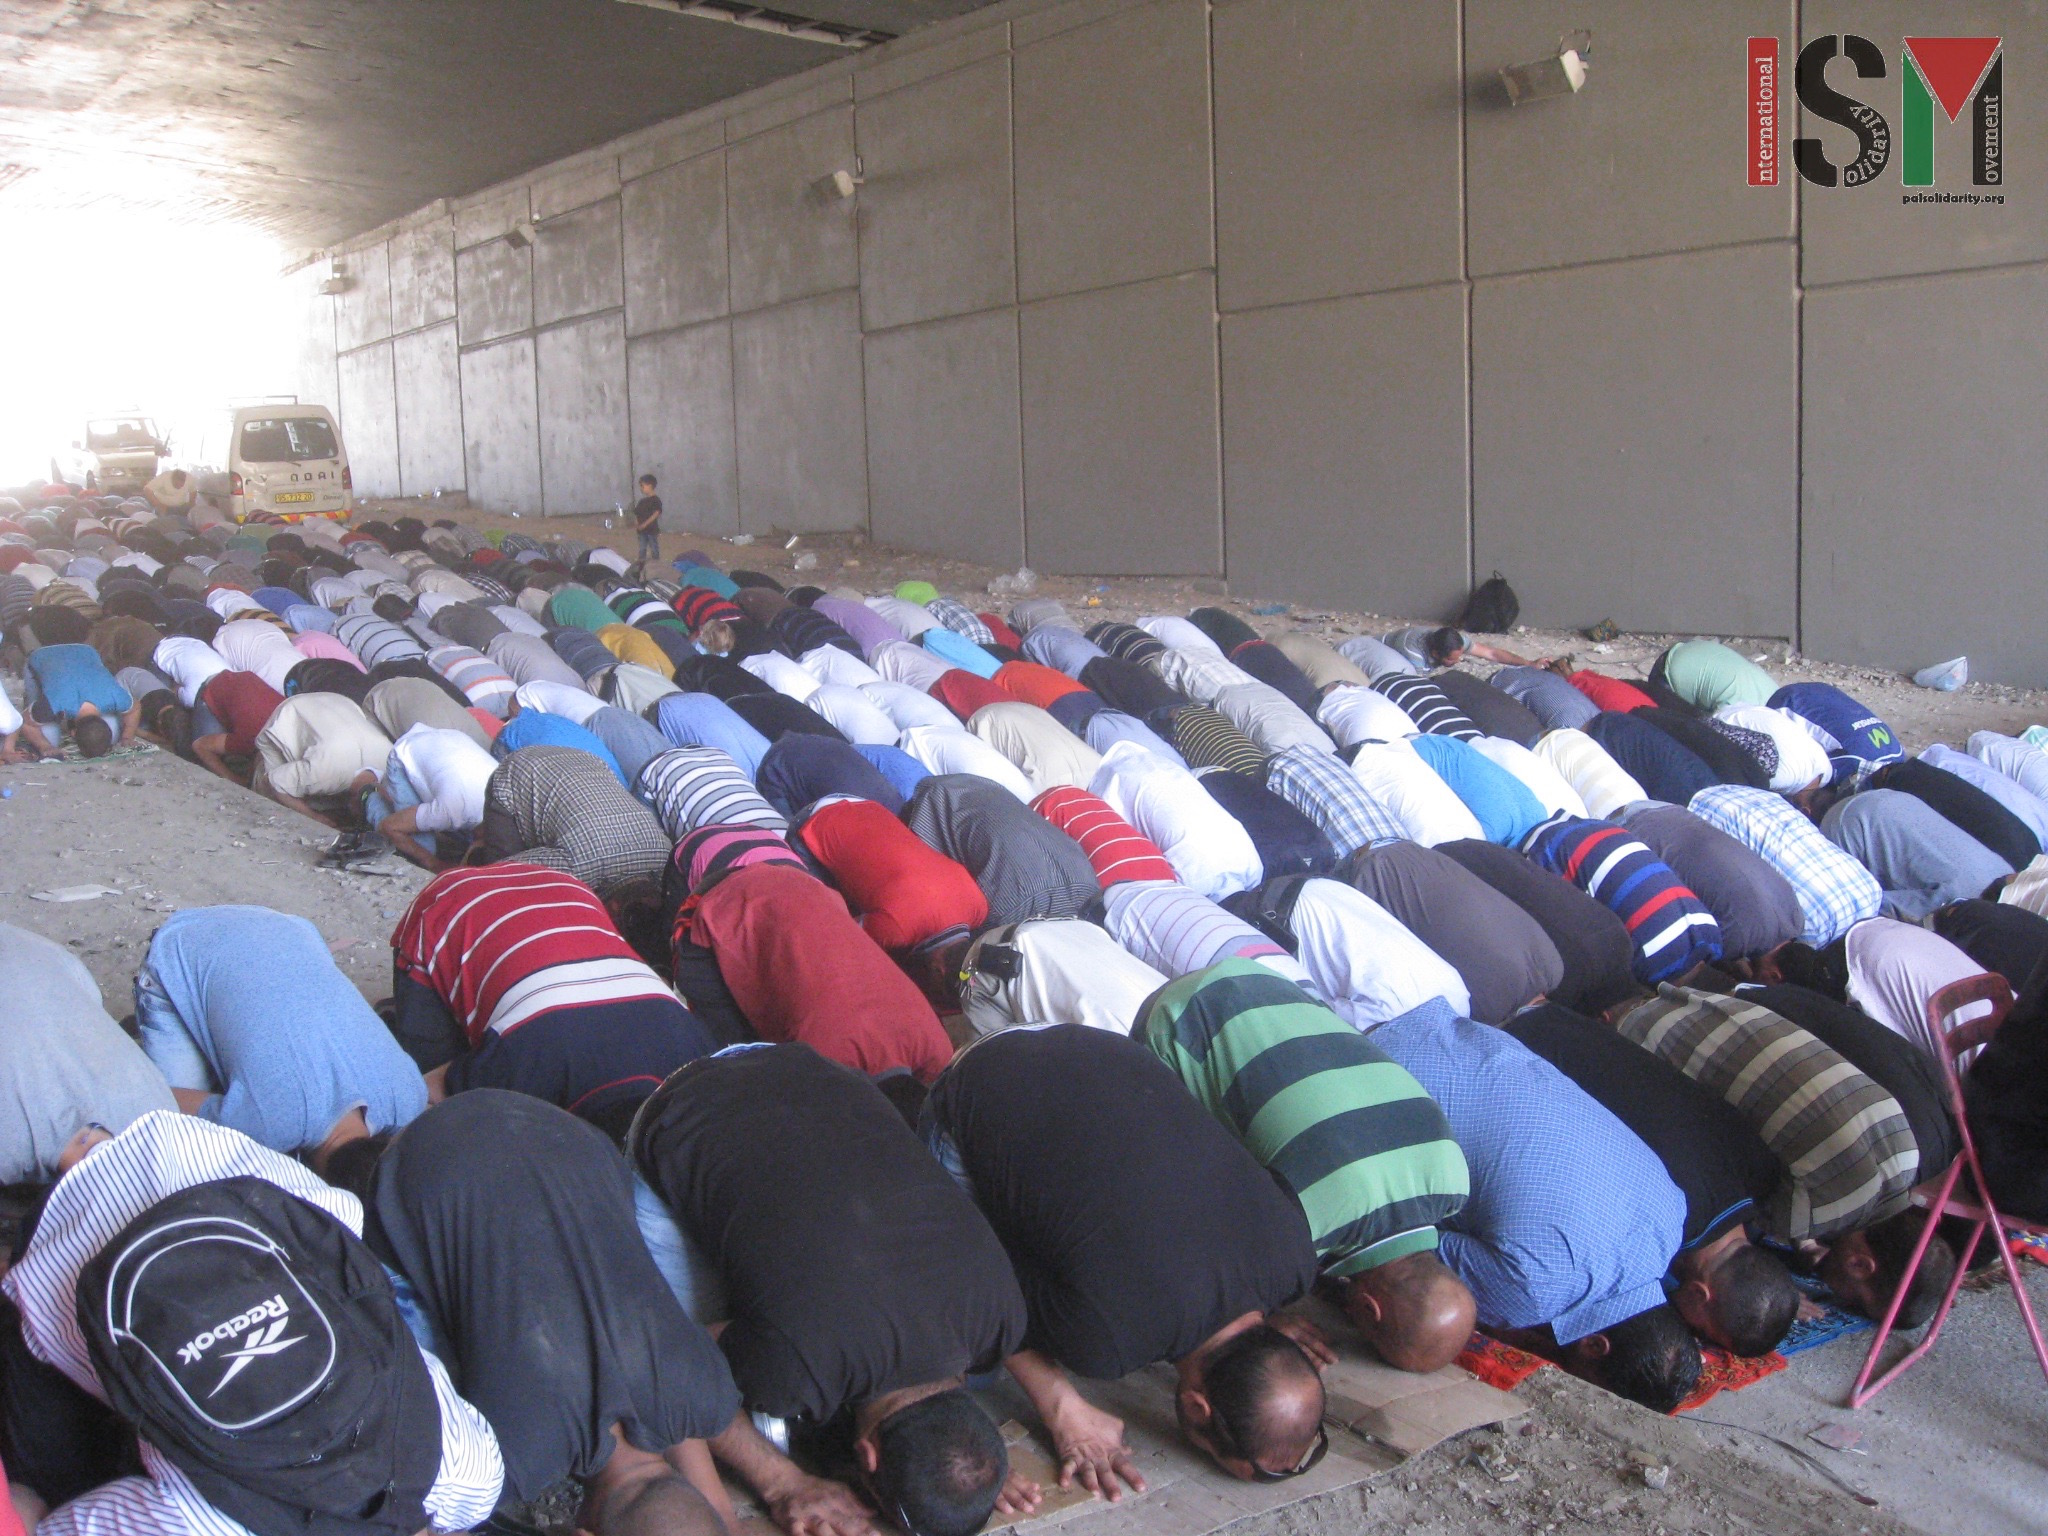 Prayer time during the demonstration